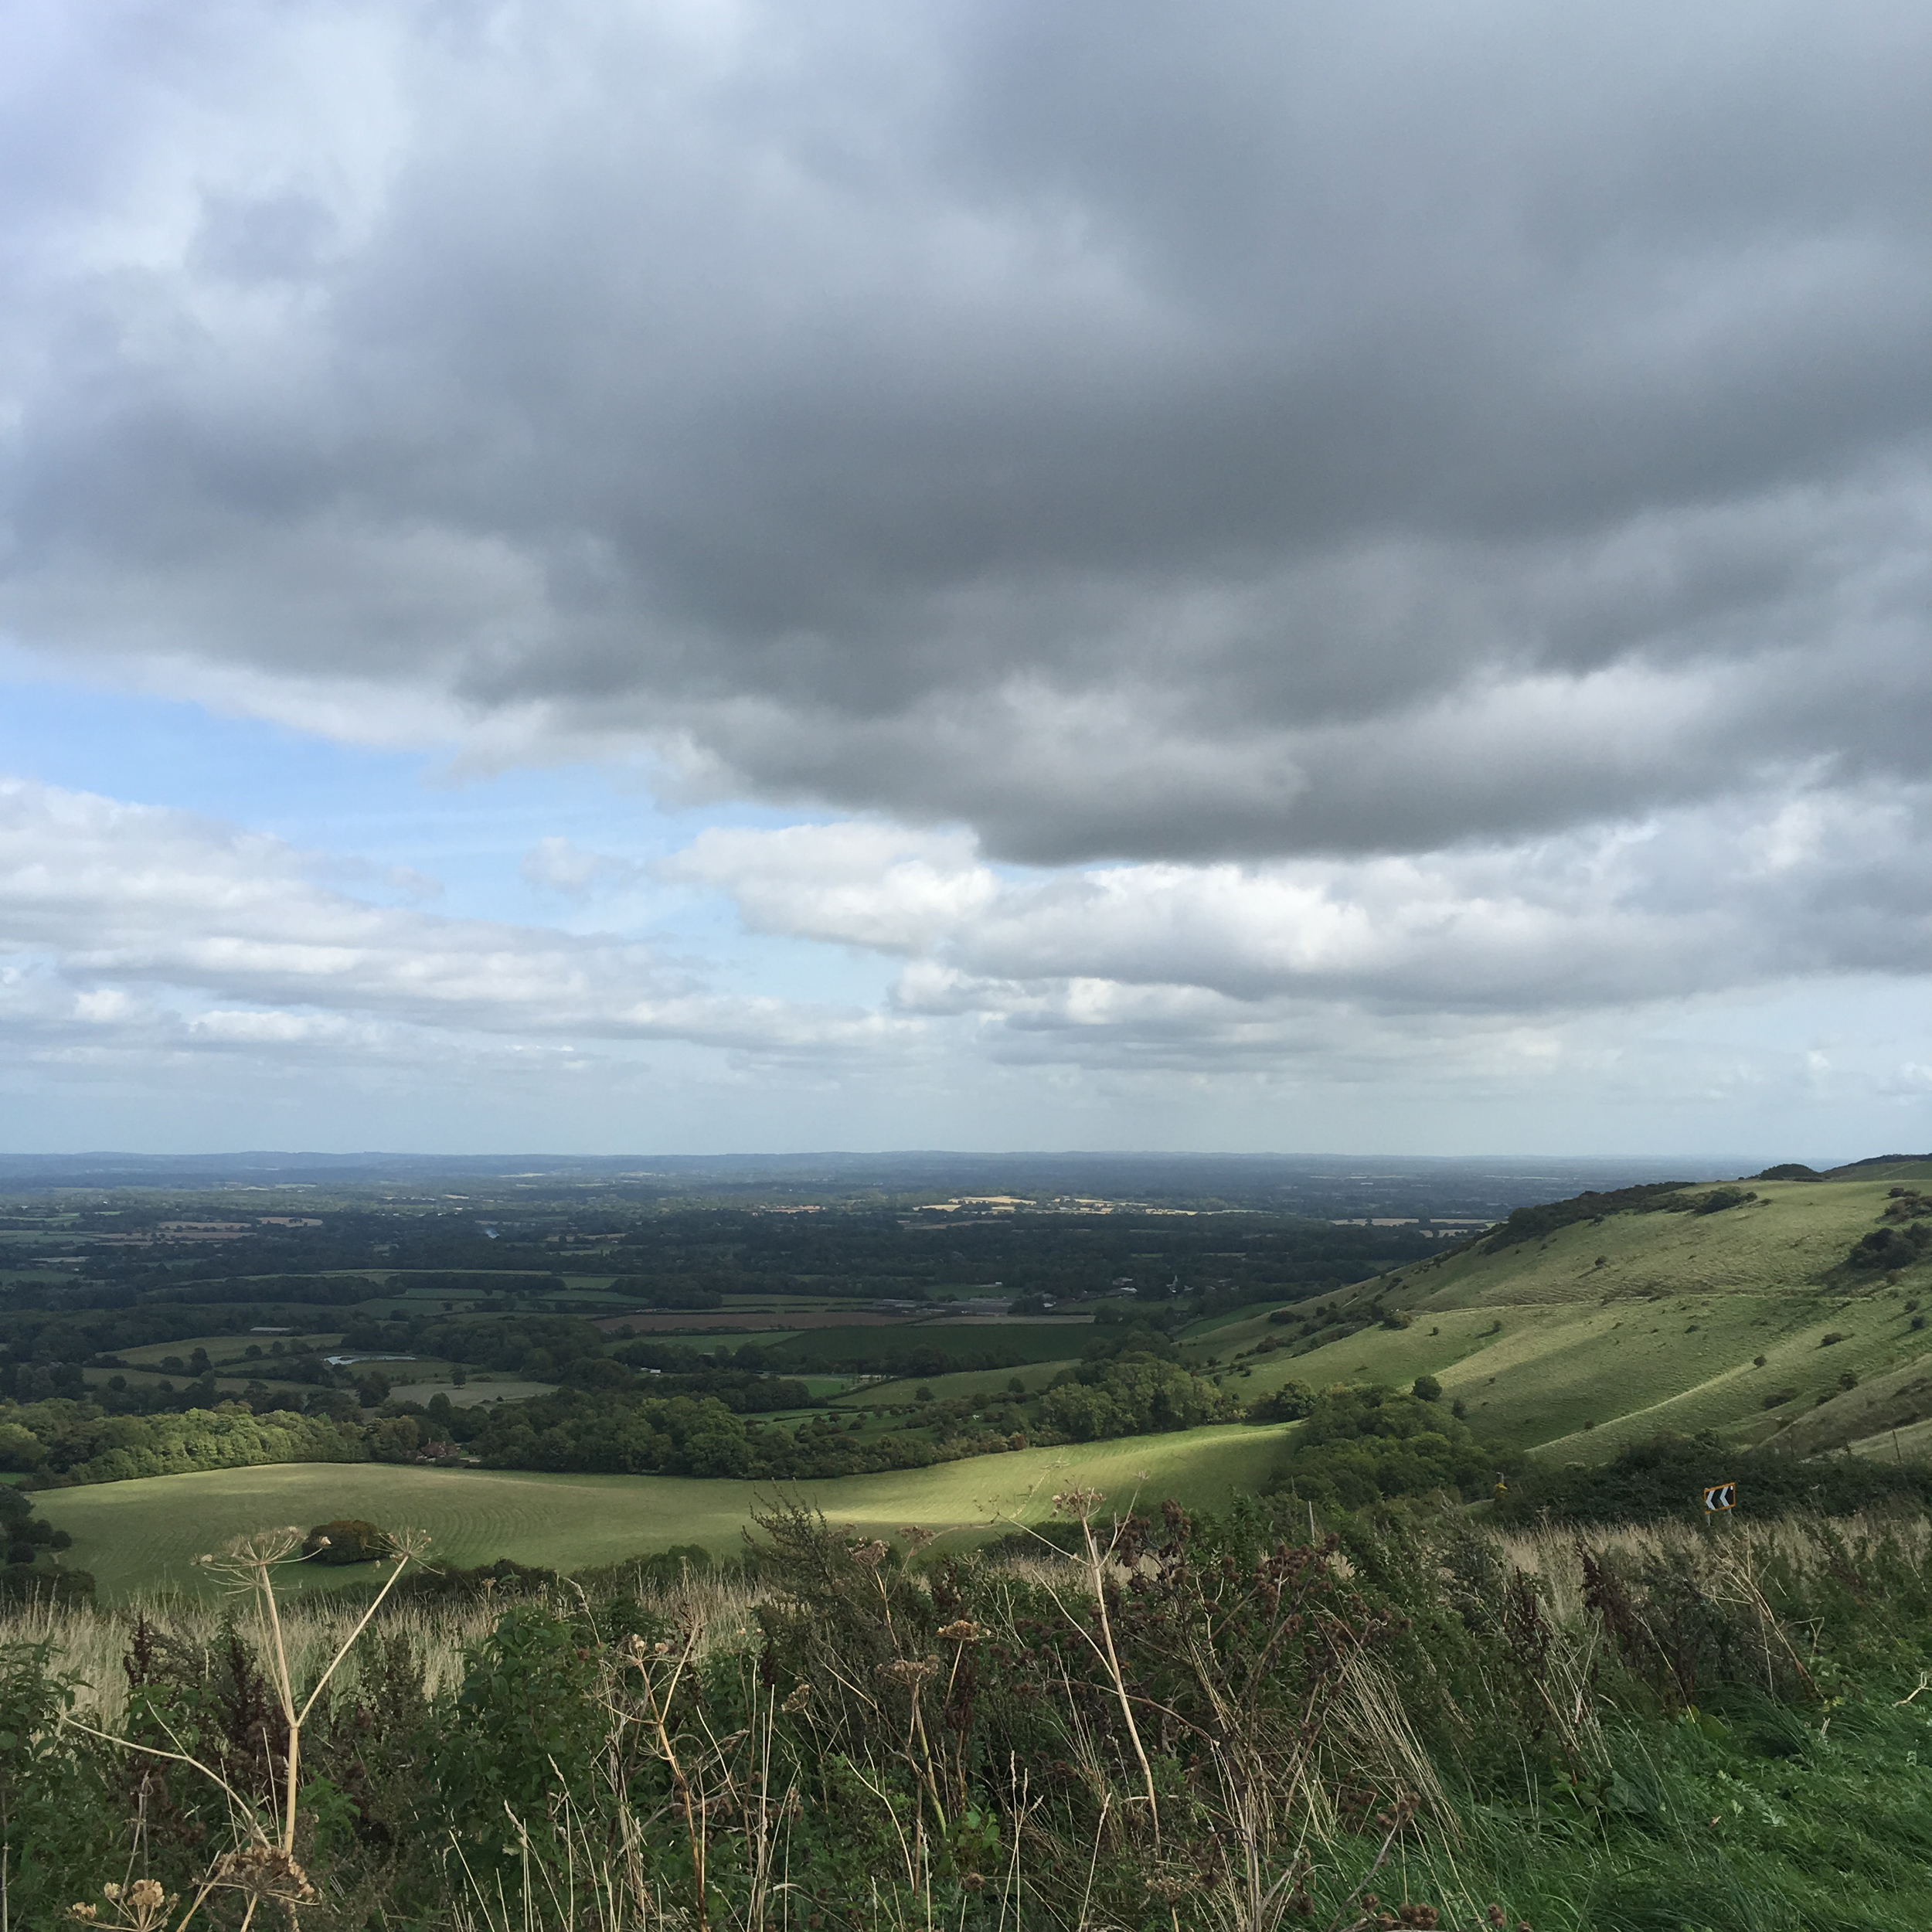 The view from the Ditchling Beacon.